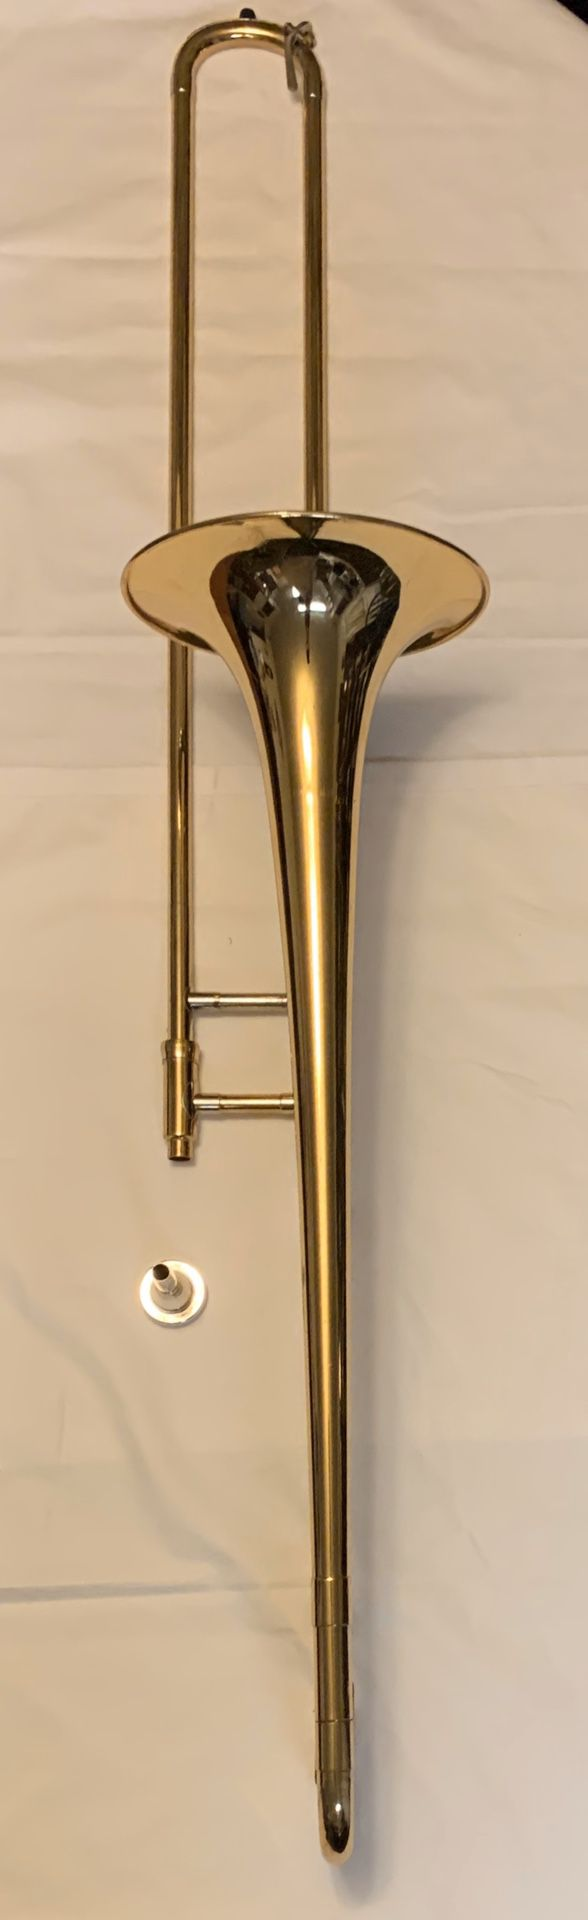 $297 OBO Ready to Play Holton TR602R Trombone Ser#024045 W/ original case and mouthpiece